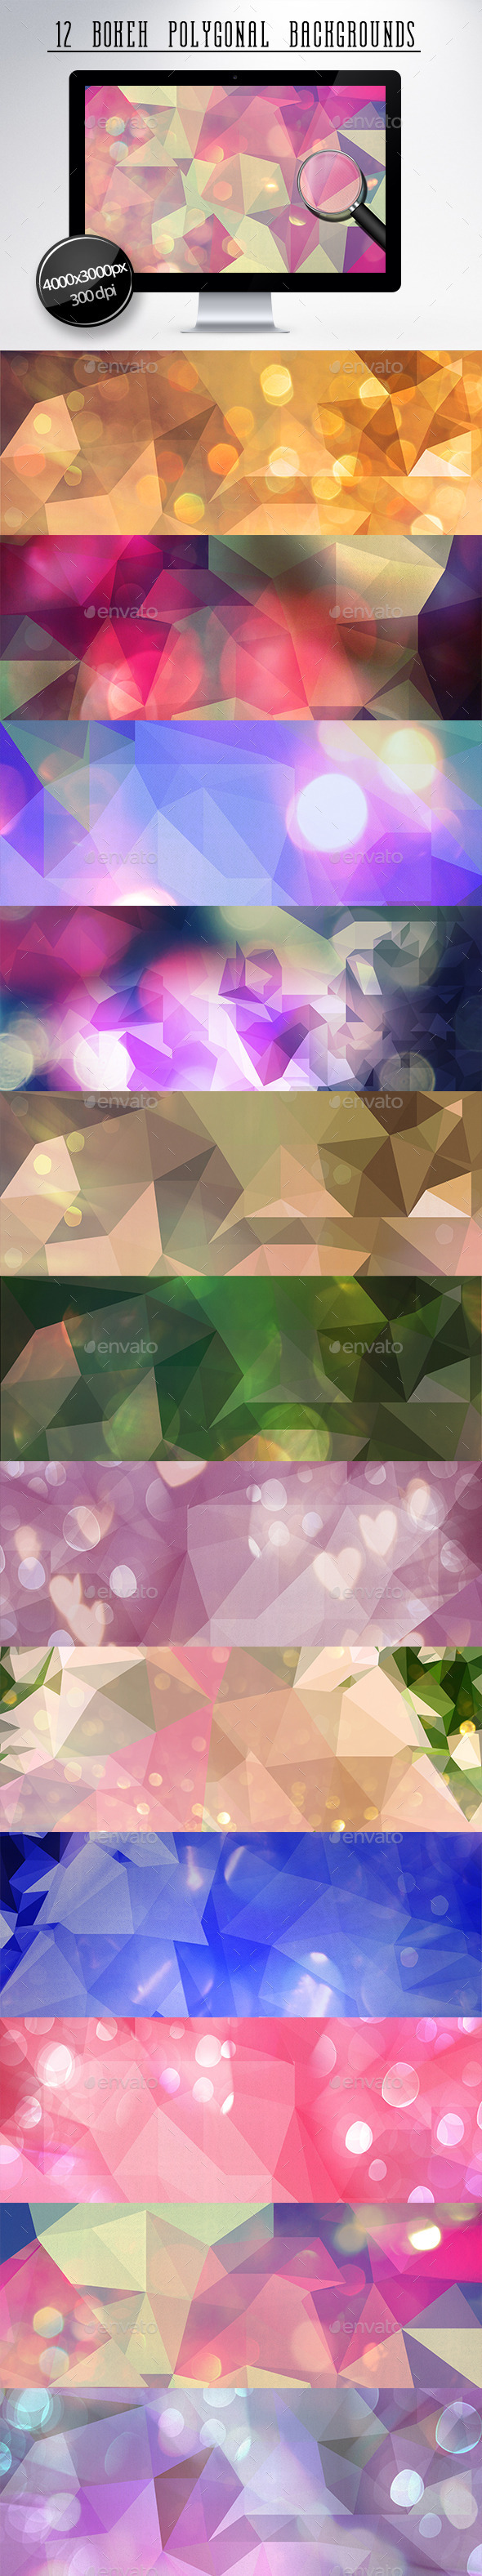 GraphicRiver 12 Bokeh Polygonal Backgrounds 11227125